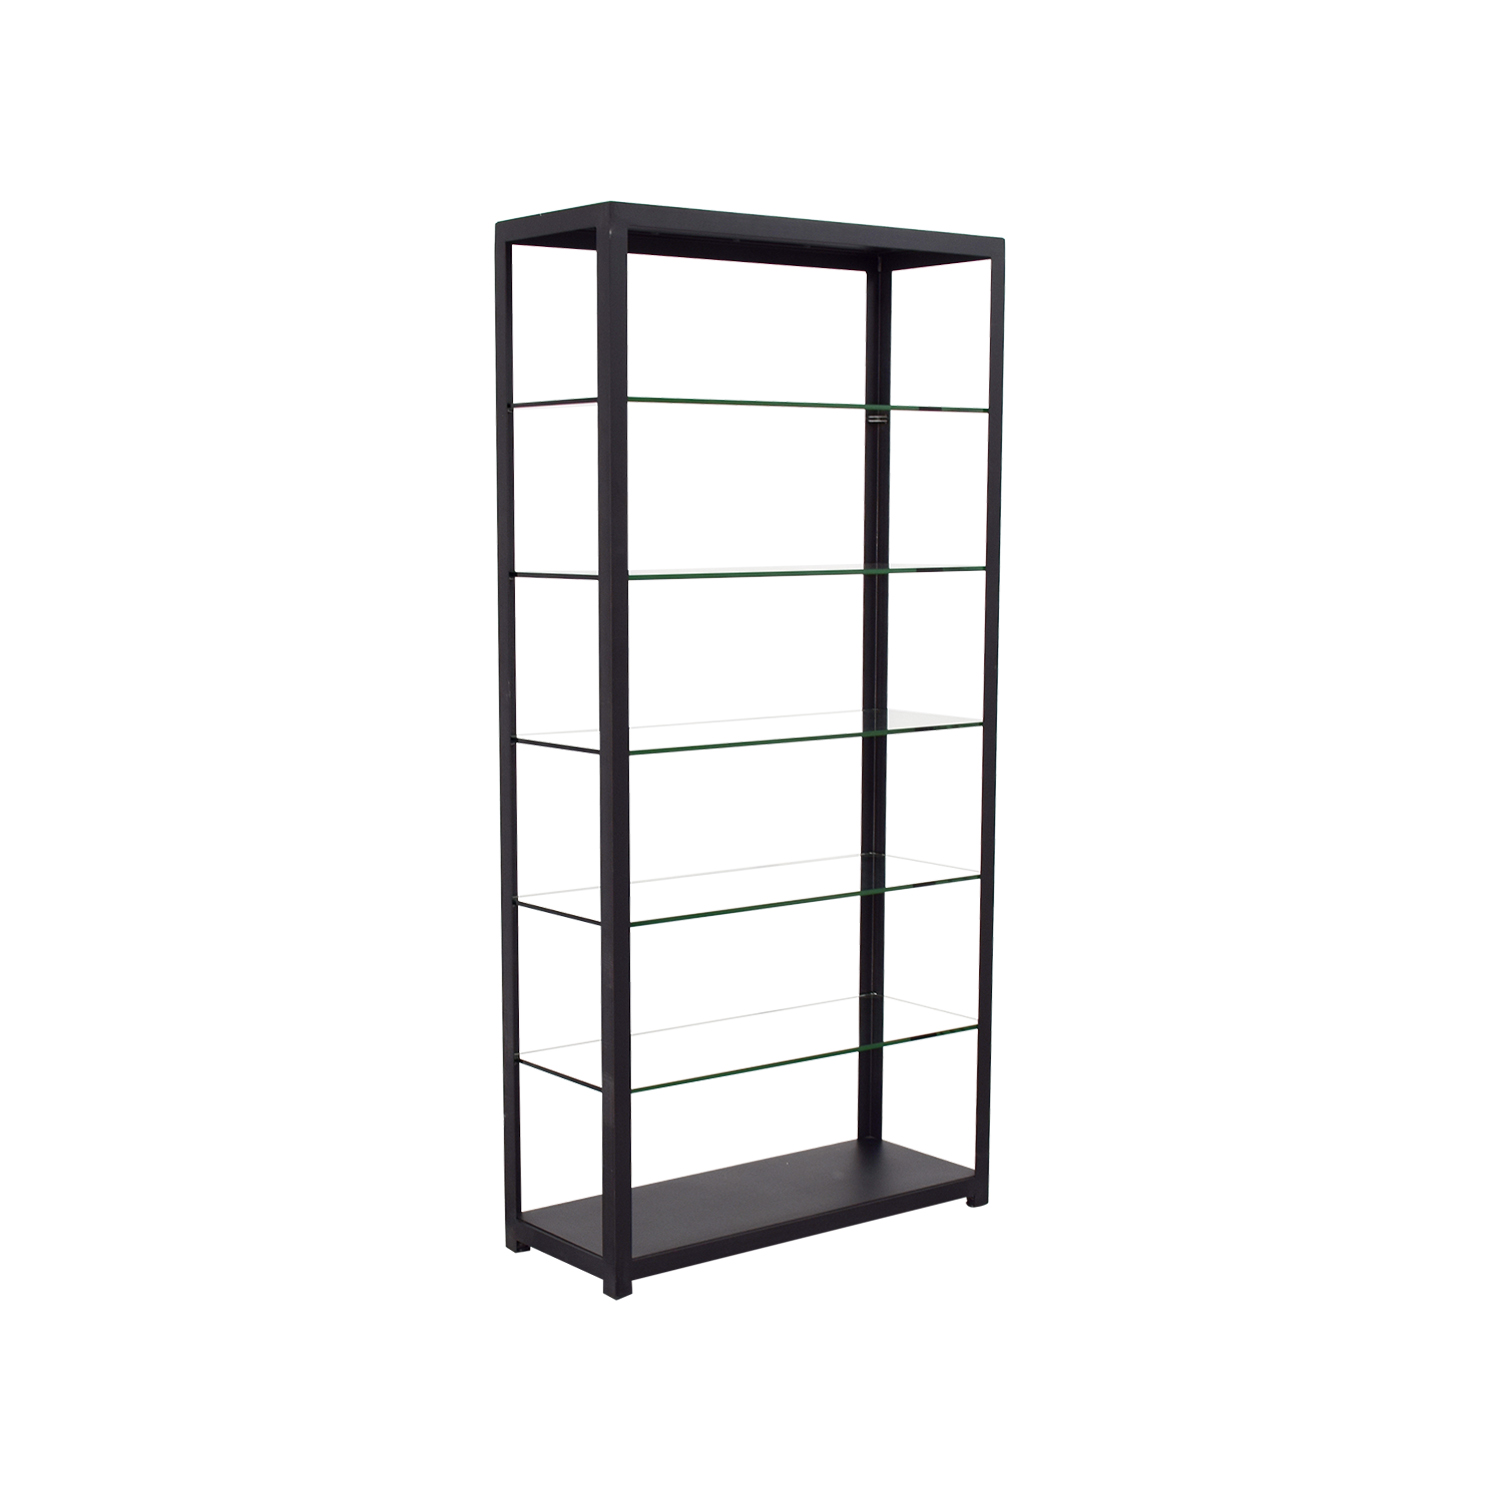 Room & Board Glass and Brass Book Shelf / Bookcases & Shelving